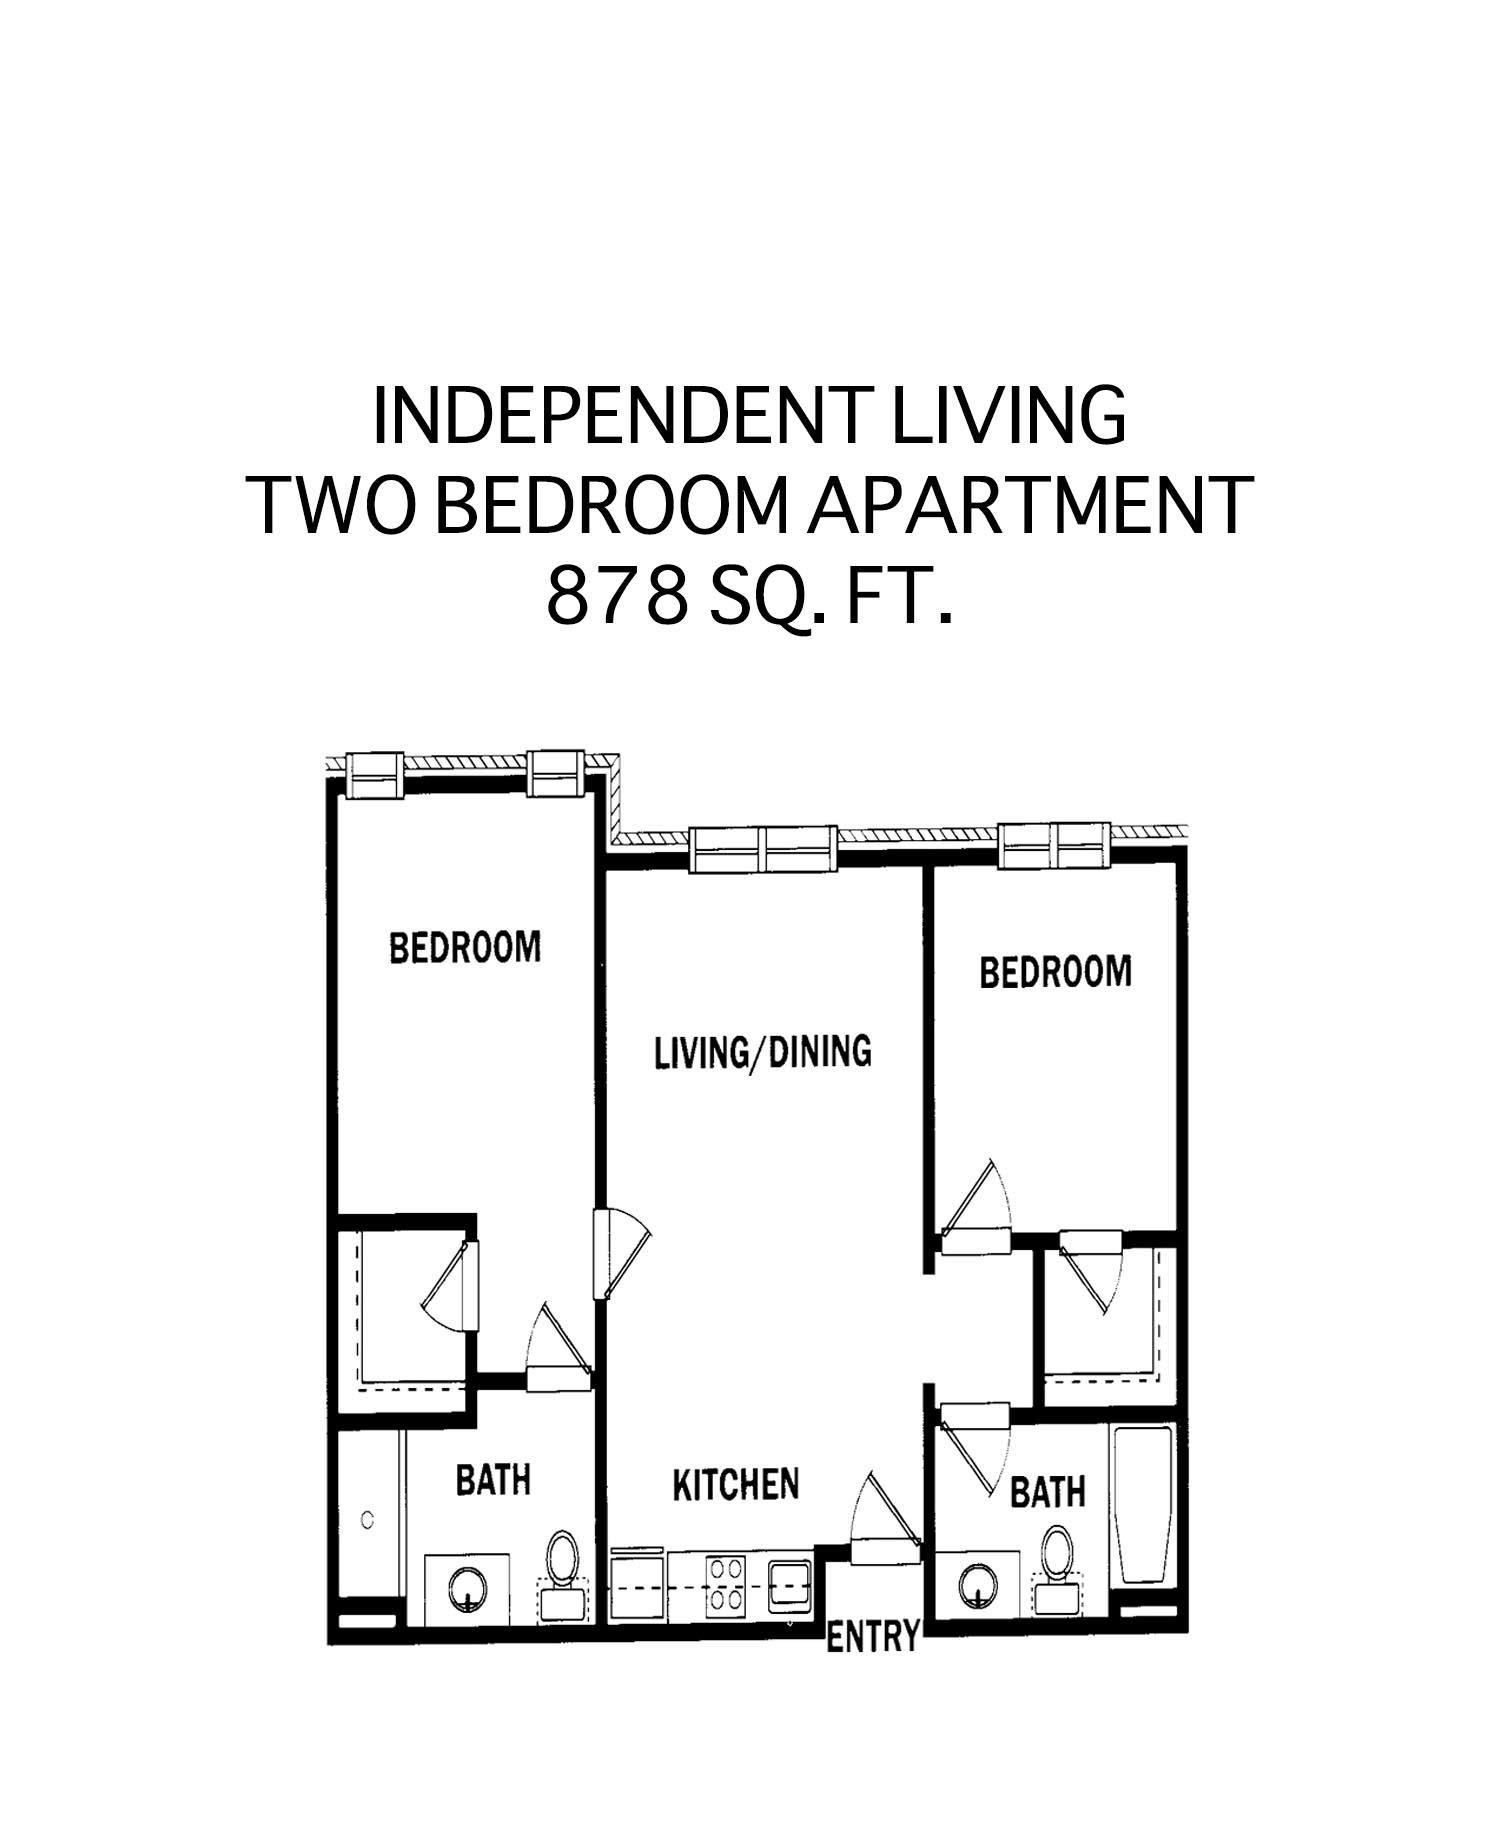 Independent Living at Southern Plaza Retirement Community